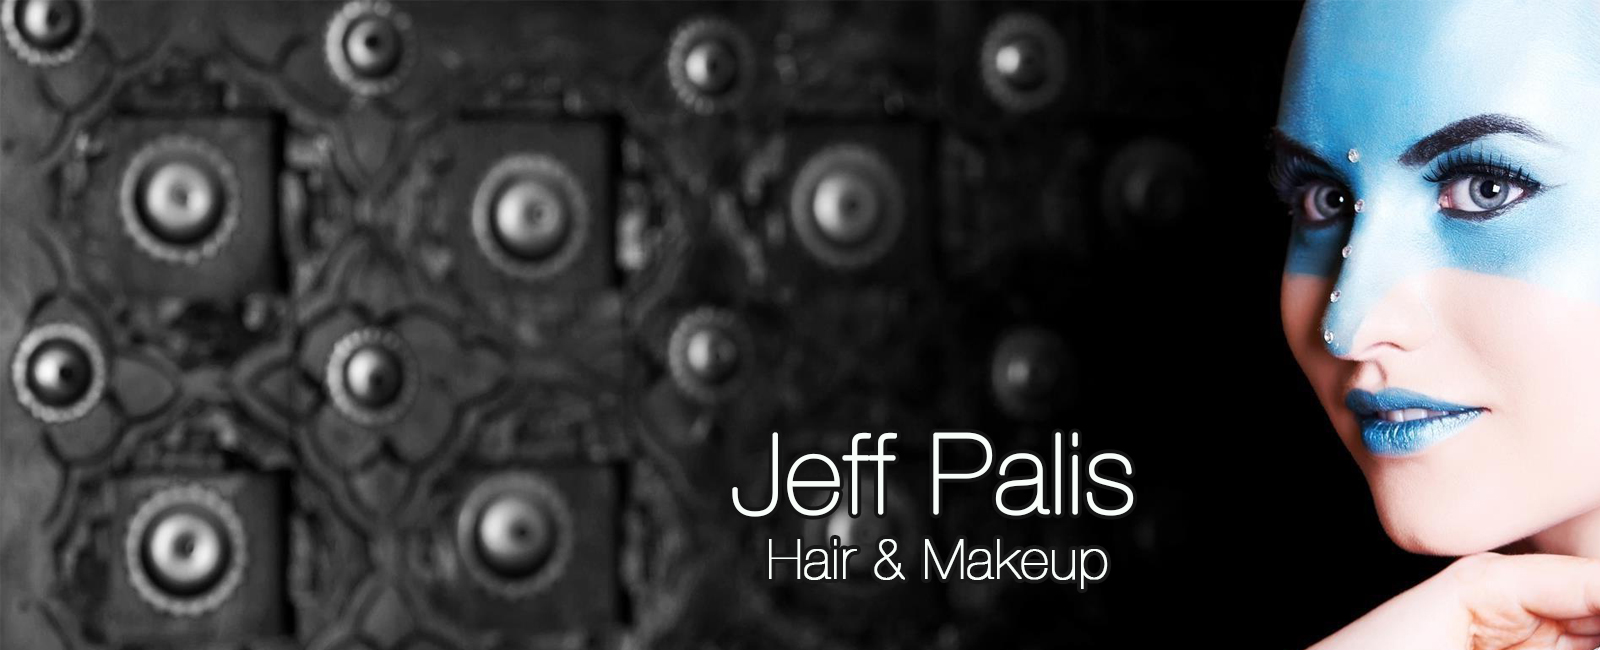 Hair & Makeup by  Jeff Palis